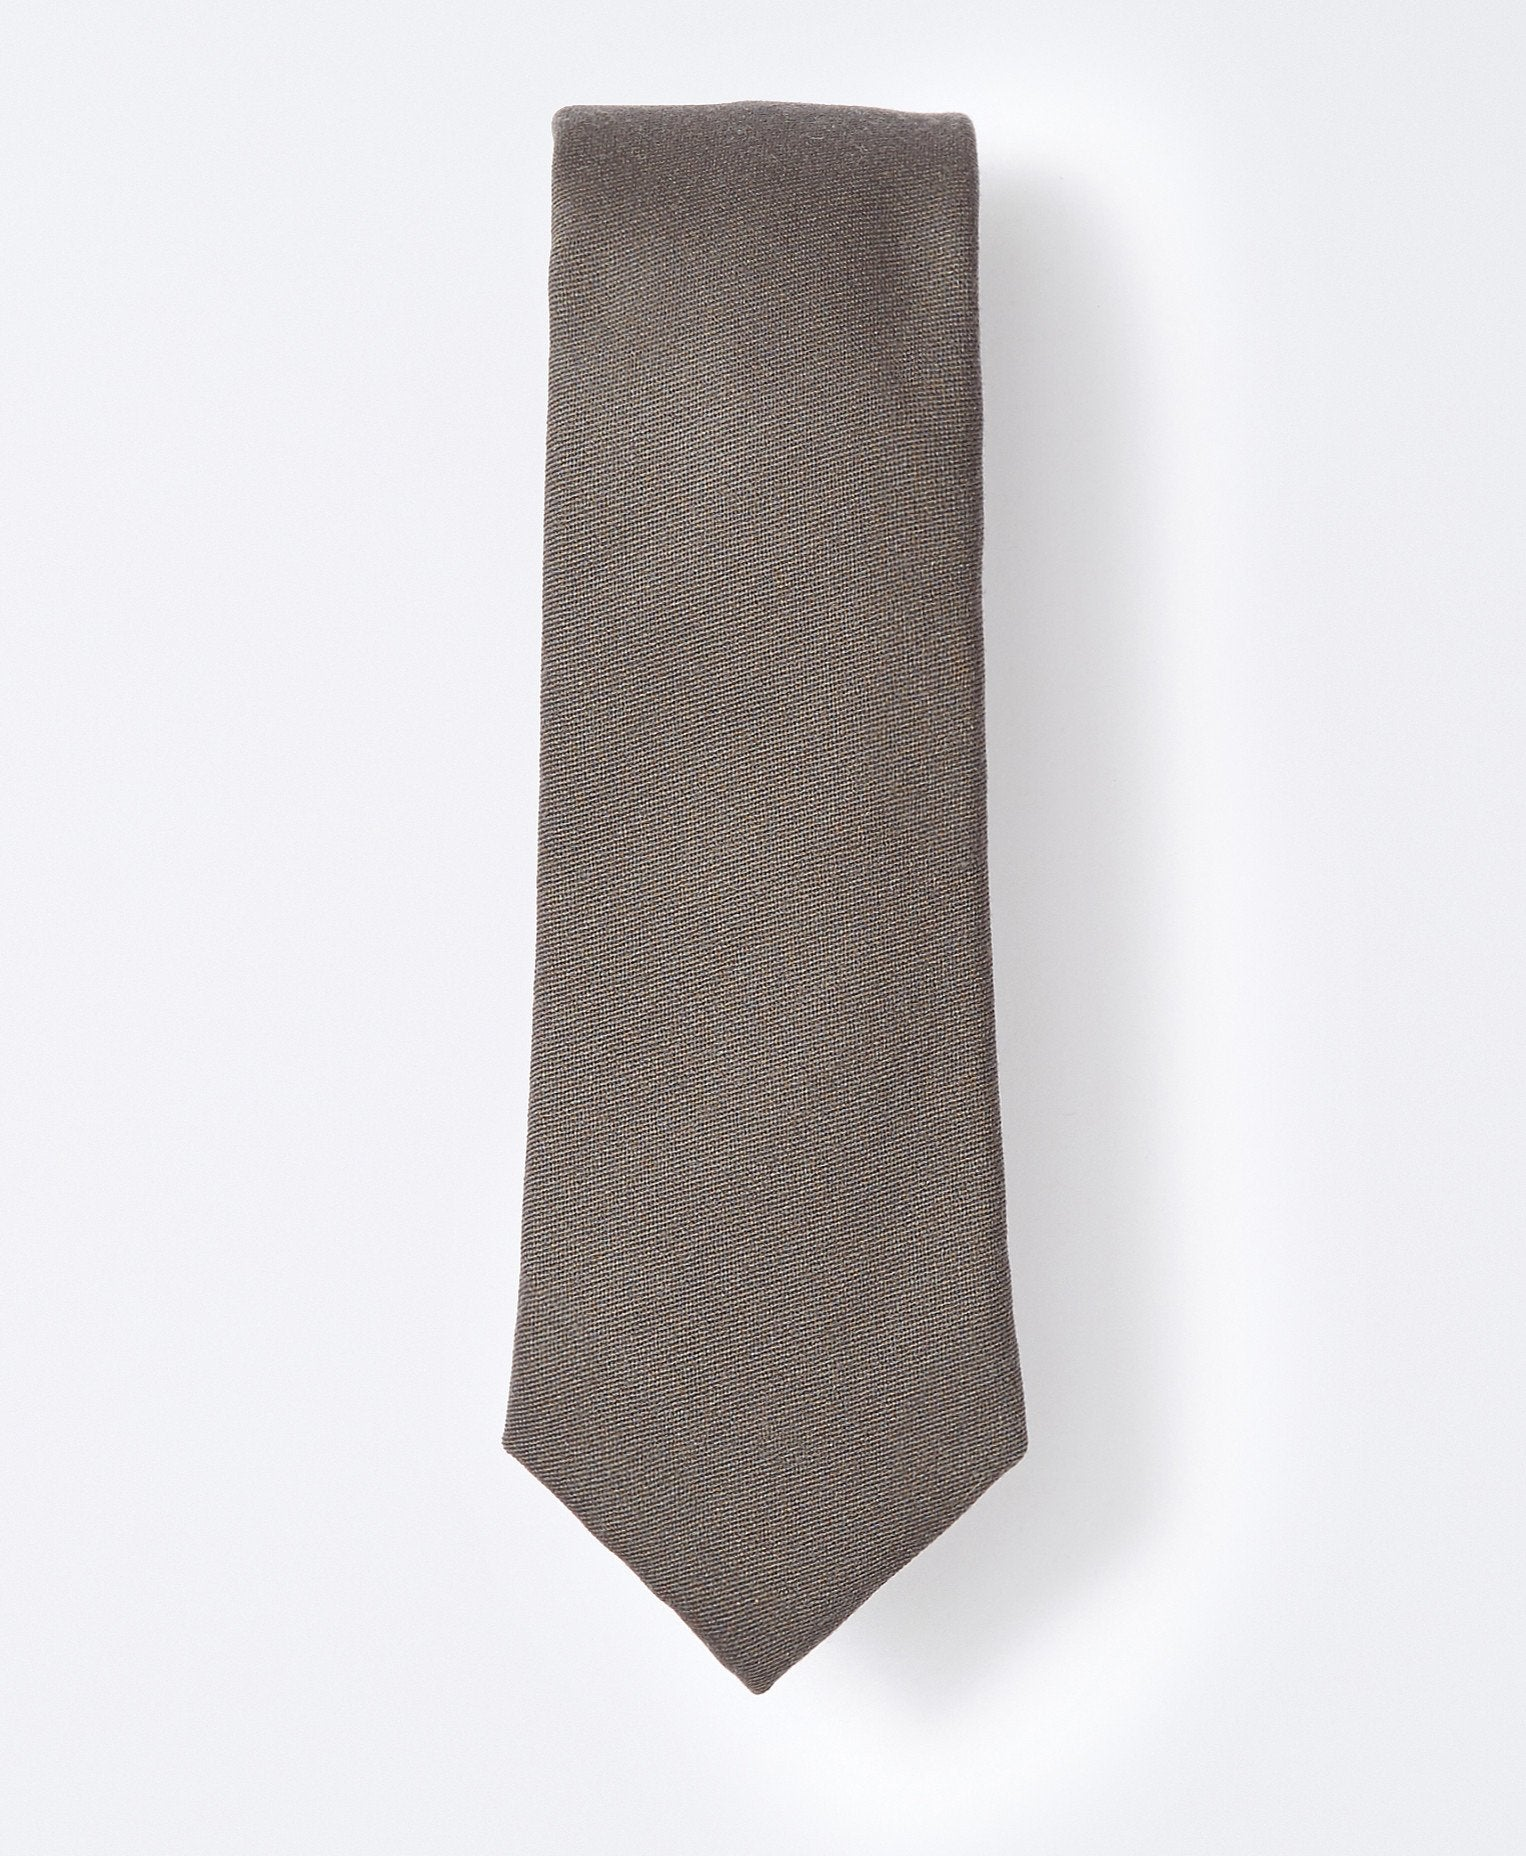 The Junior Necktie